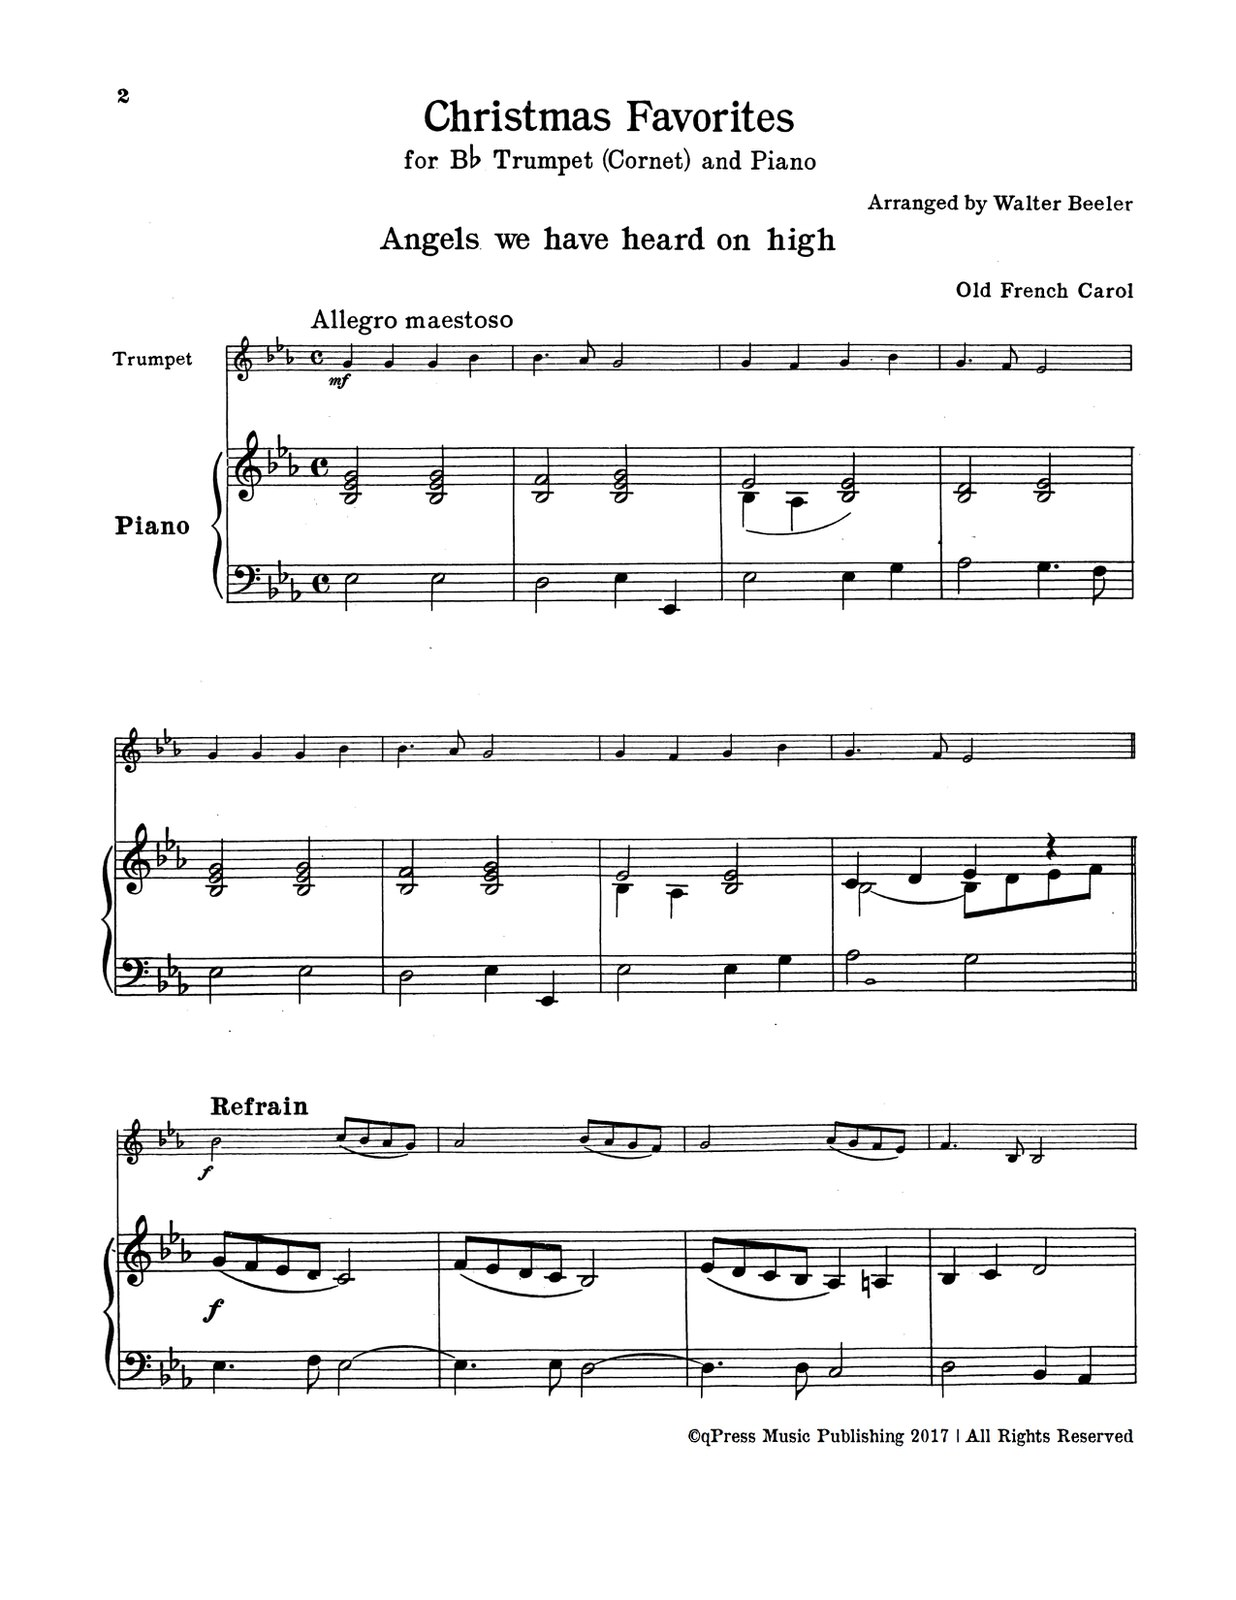 Beeler\'s Christmas Favorites for Trumpet & Piano by Beeler, Walter ...